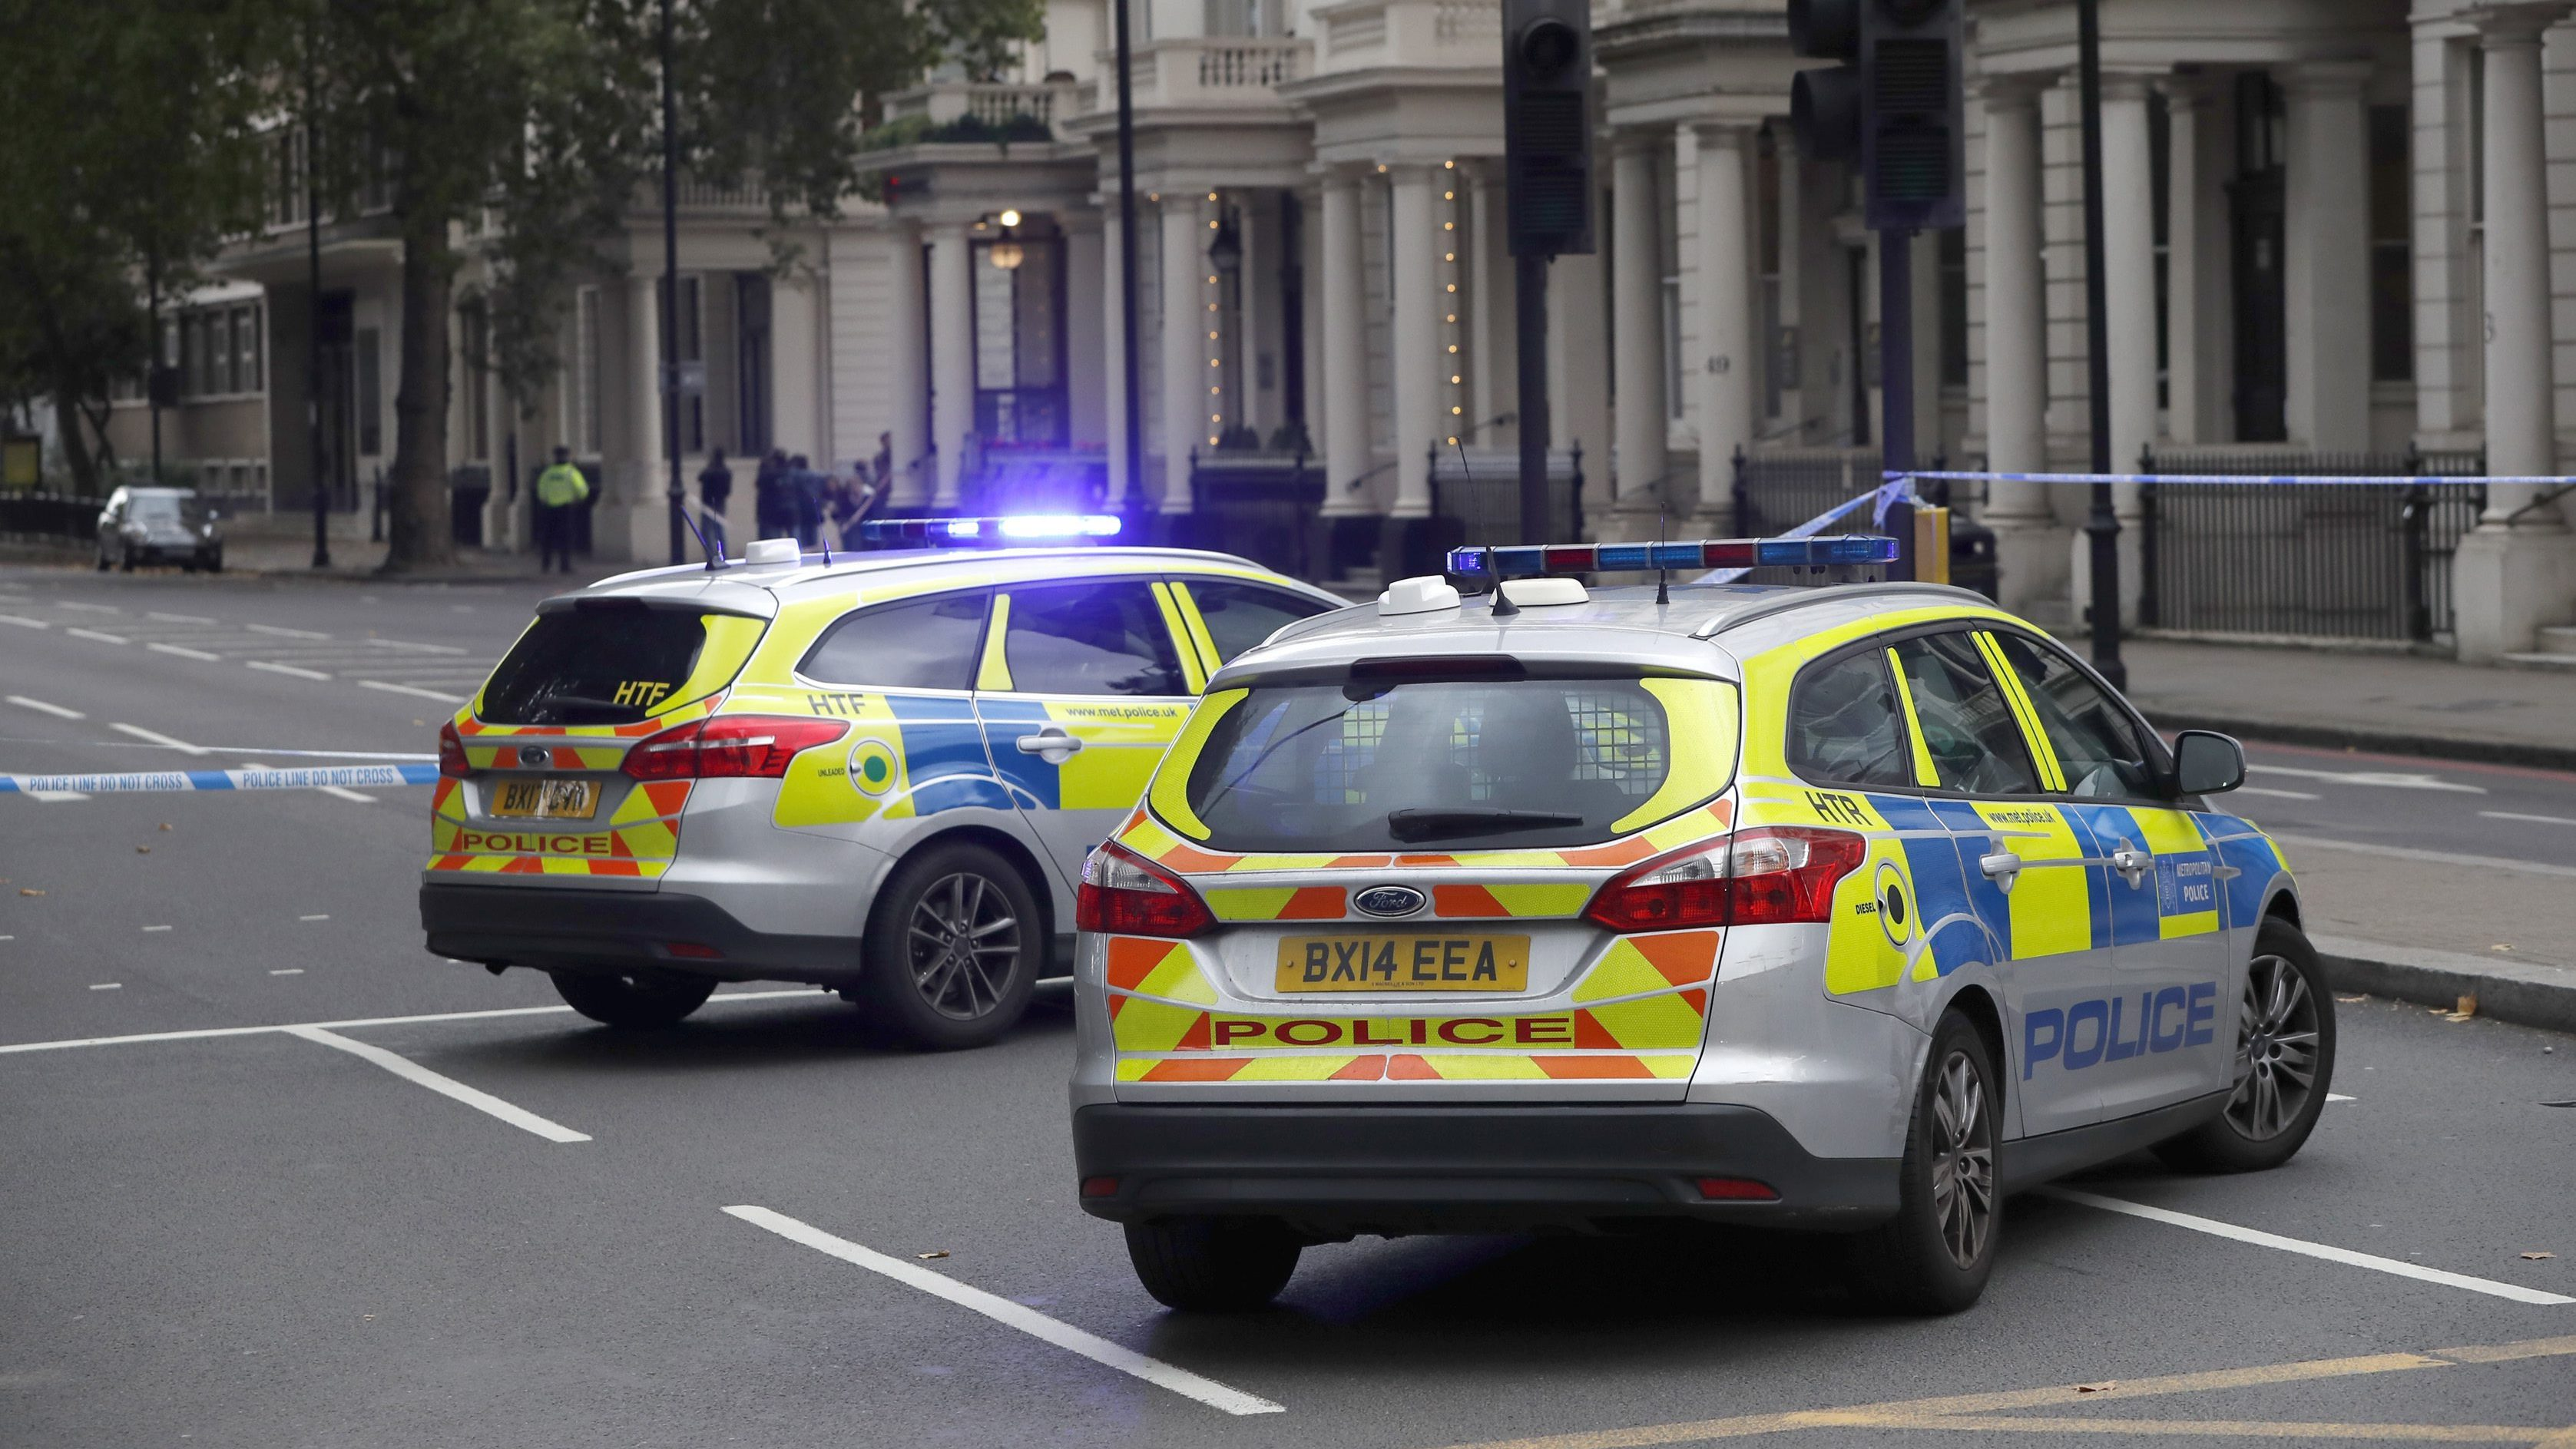 car crash outside london museum is traffic accident not. Black Bedroom Furniture Sets. Home Design Ideas